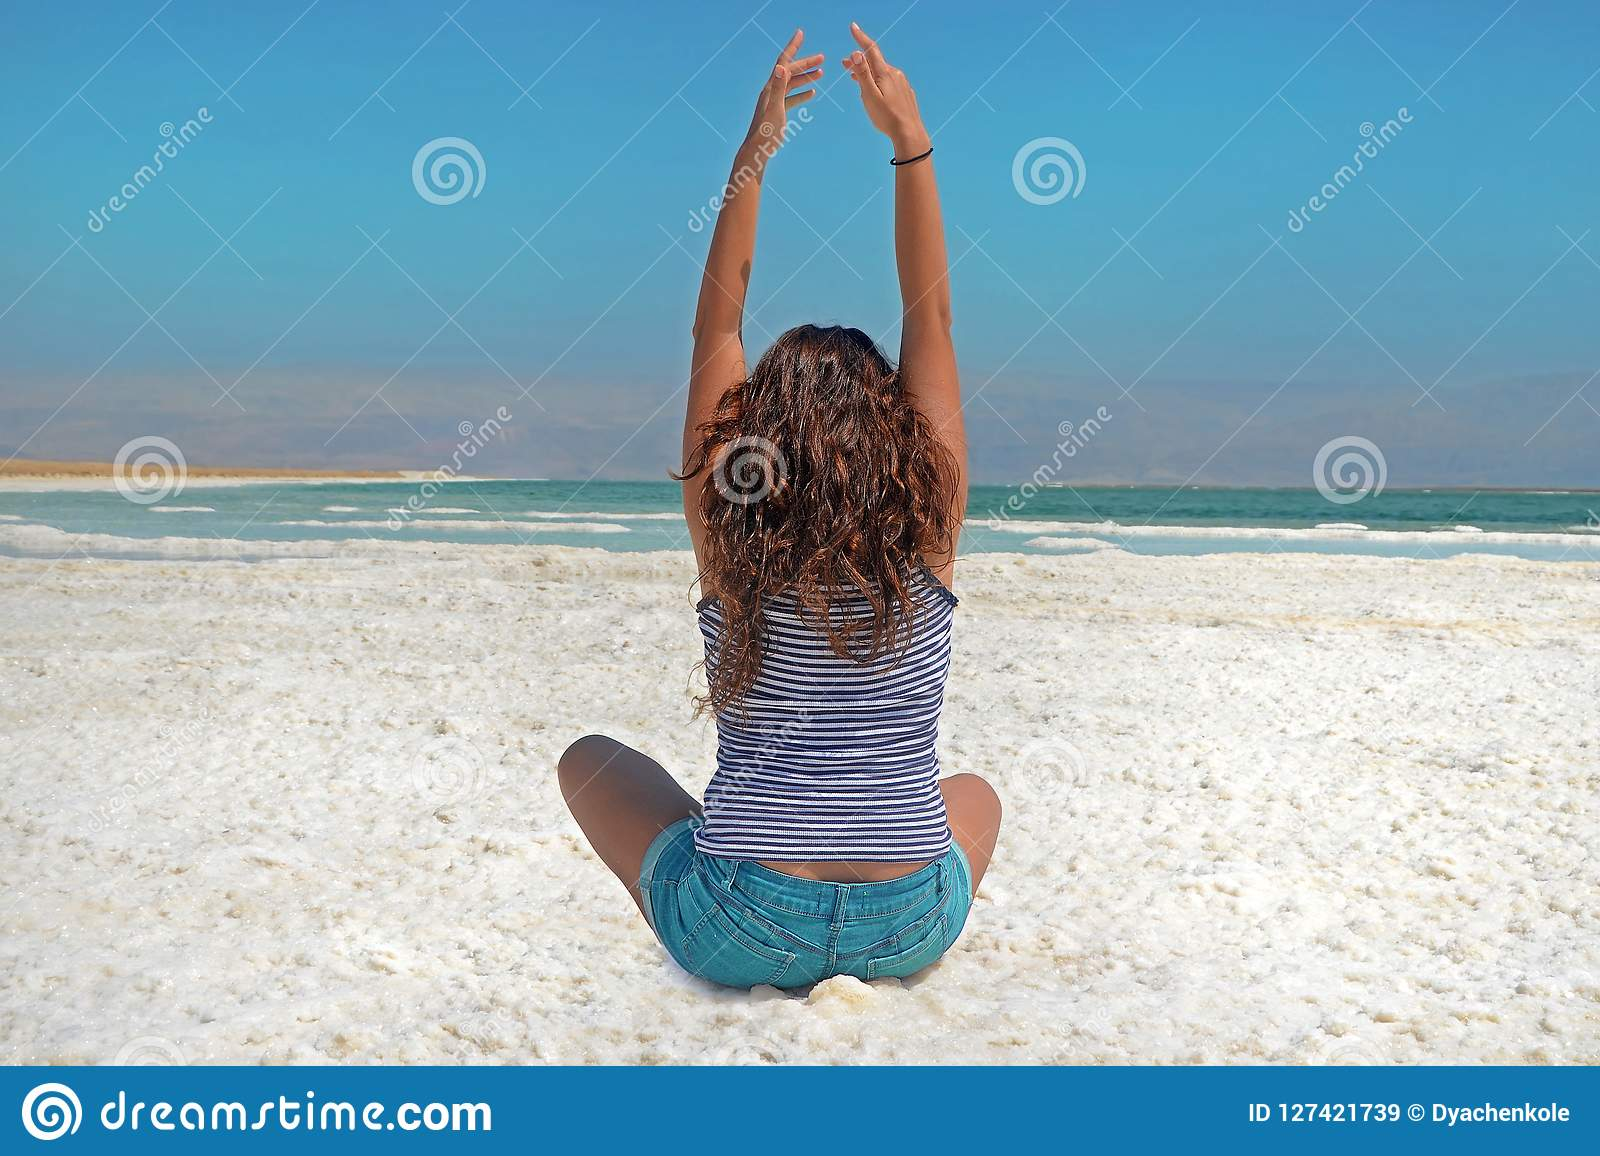 The brunette stretches her arms up, looking at the mountains of Jordan